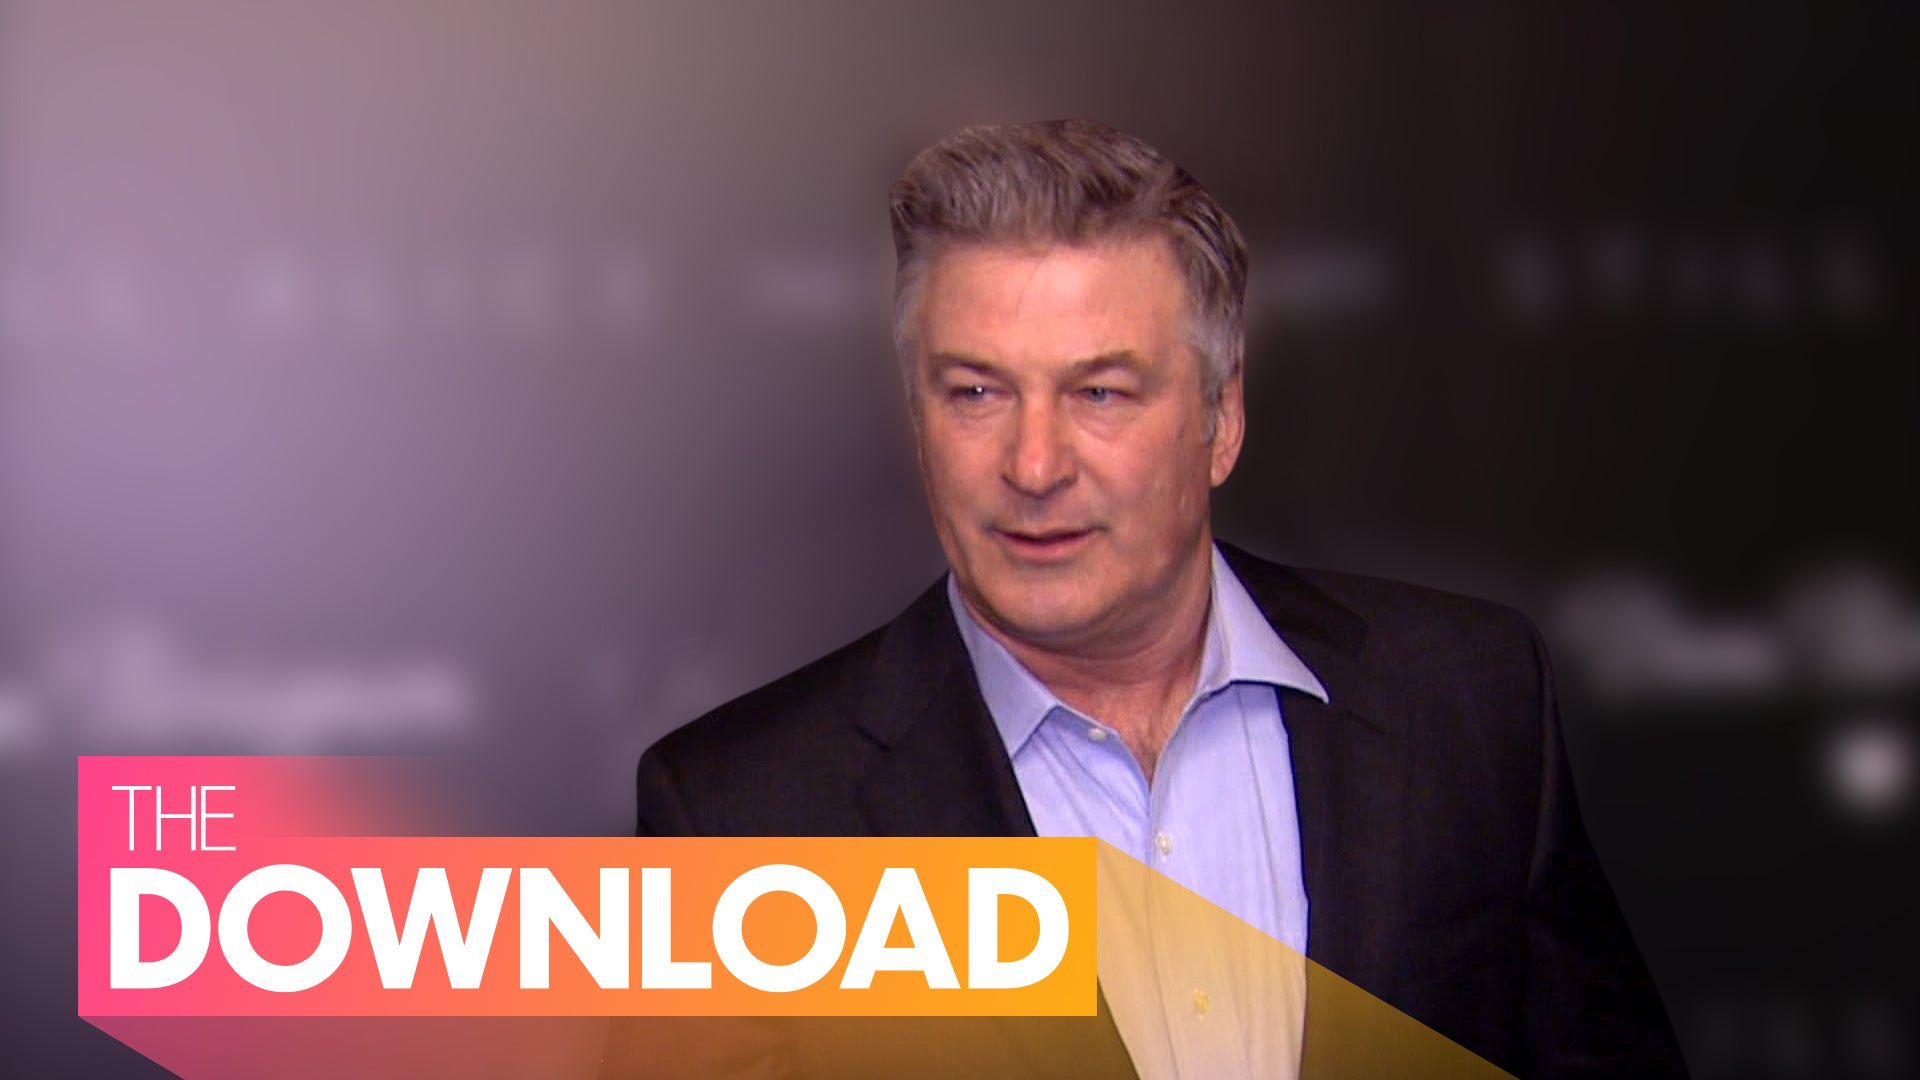 Alec Baldwin Speaks Out in Aftermath of Fatal Shooting on 'Rust' Set